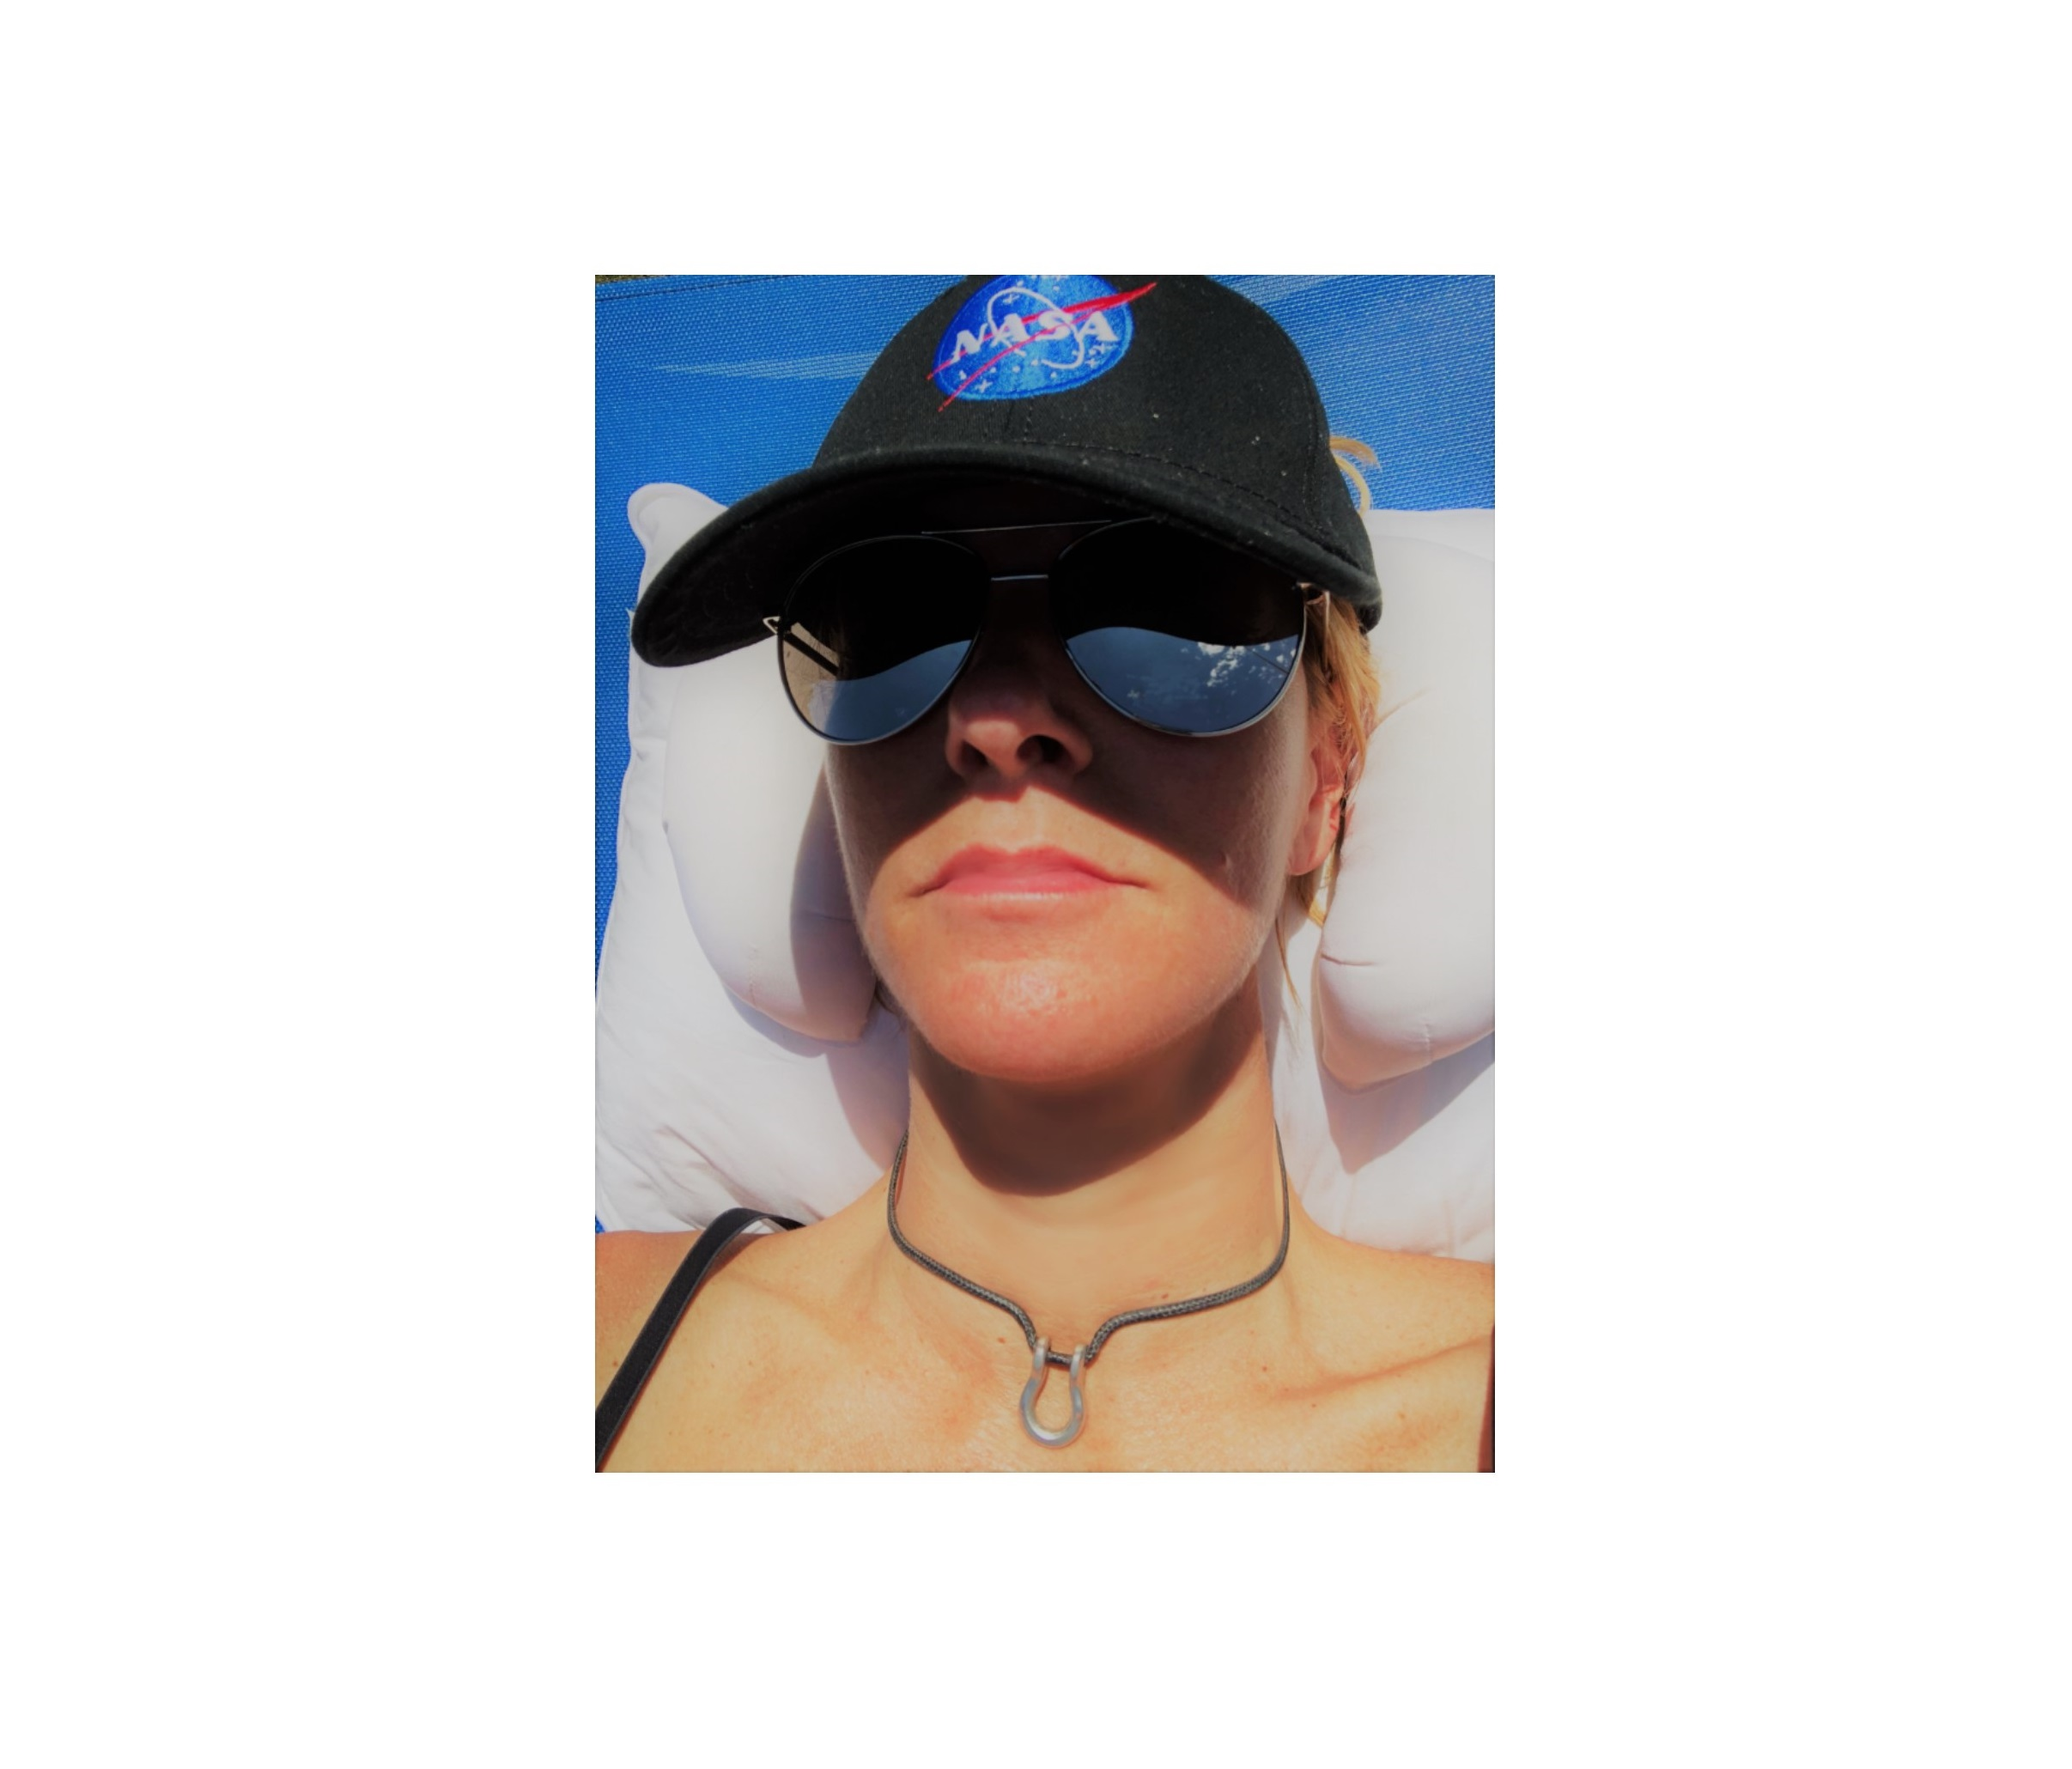 Social Avoiding Sun Damage And Aging The Back To Beauty